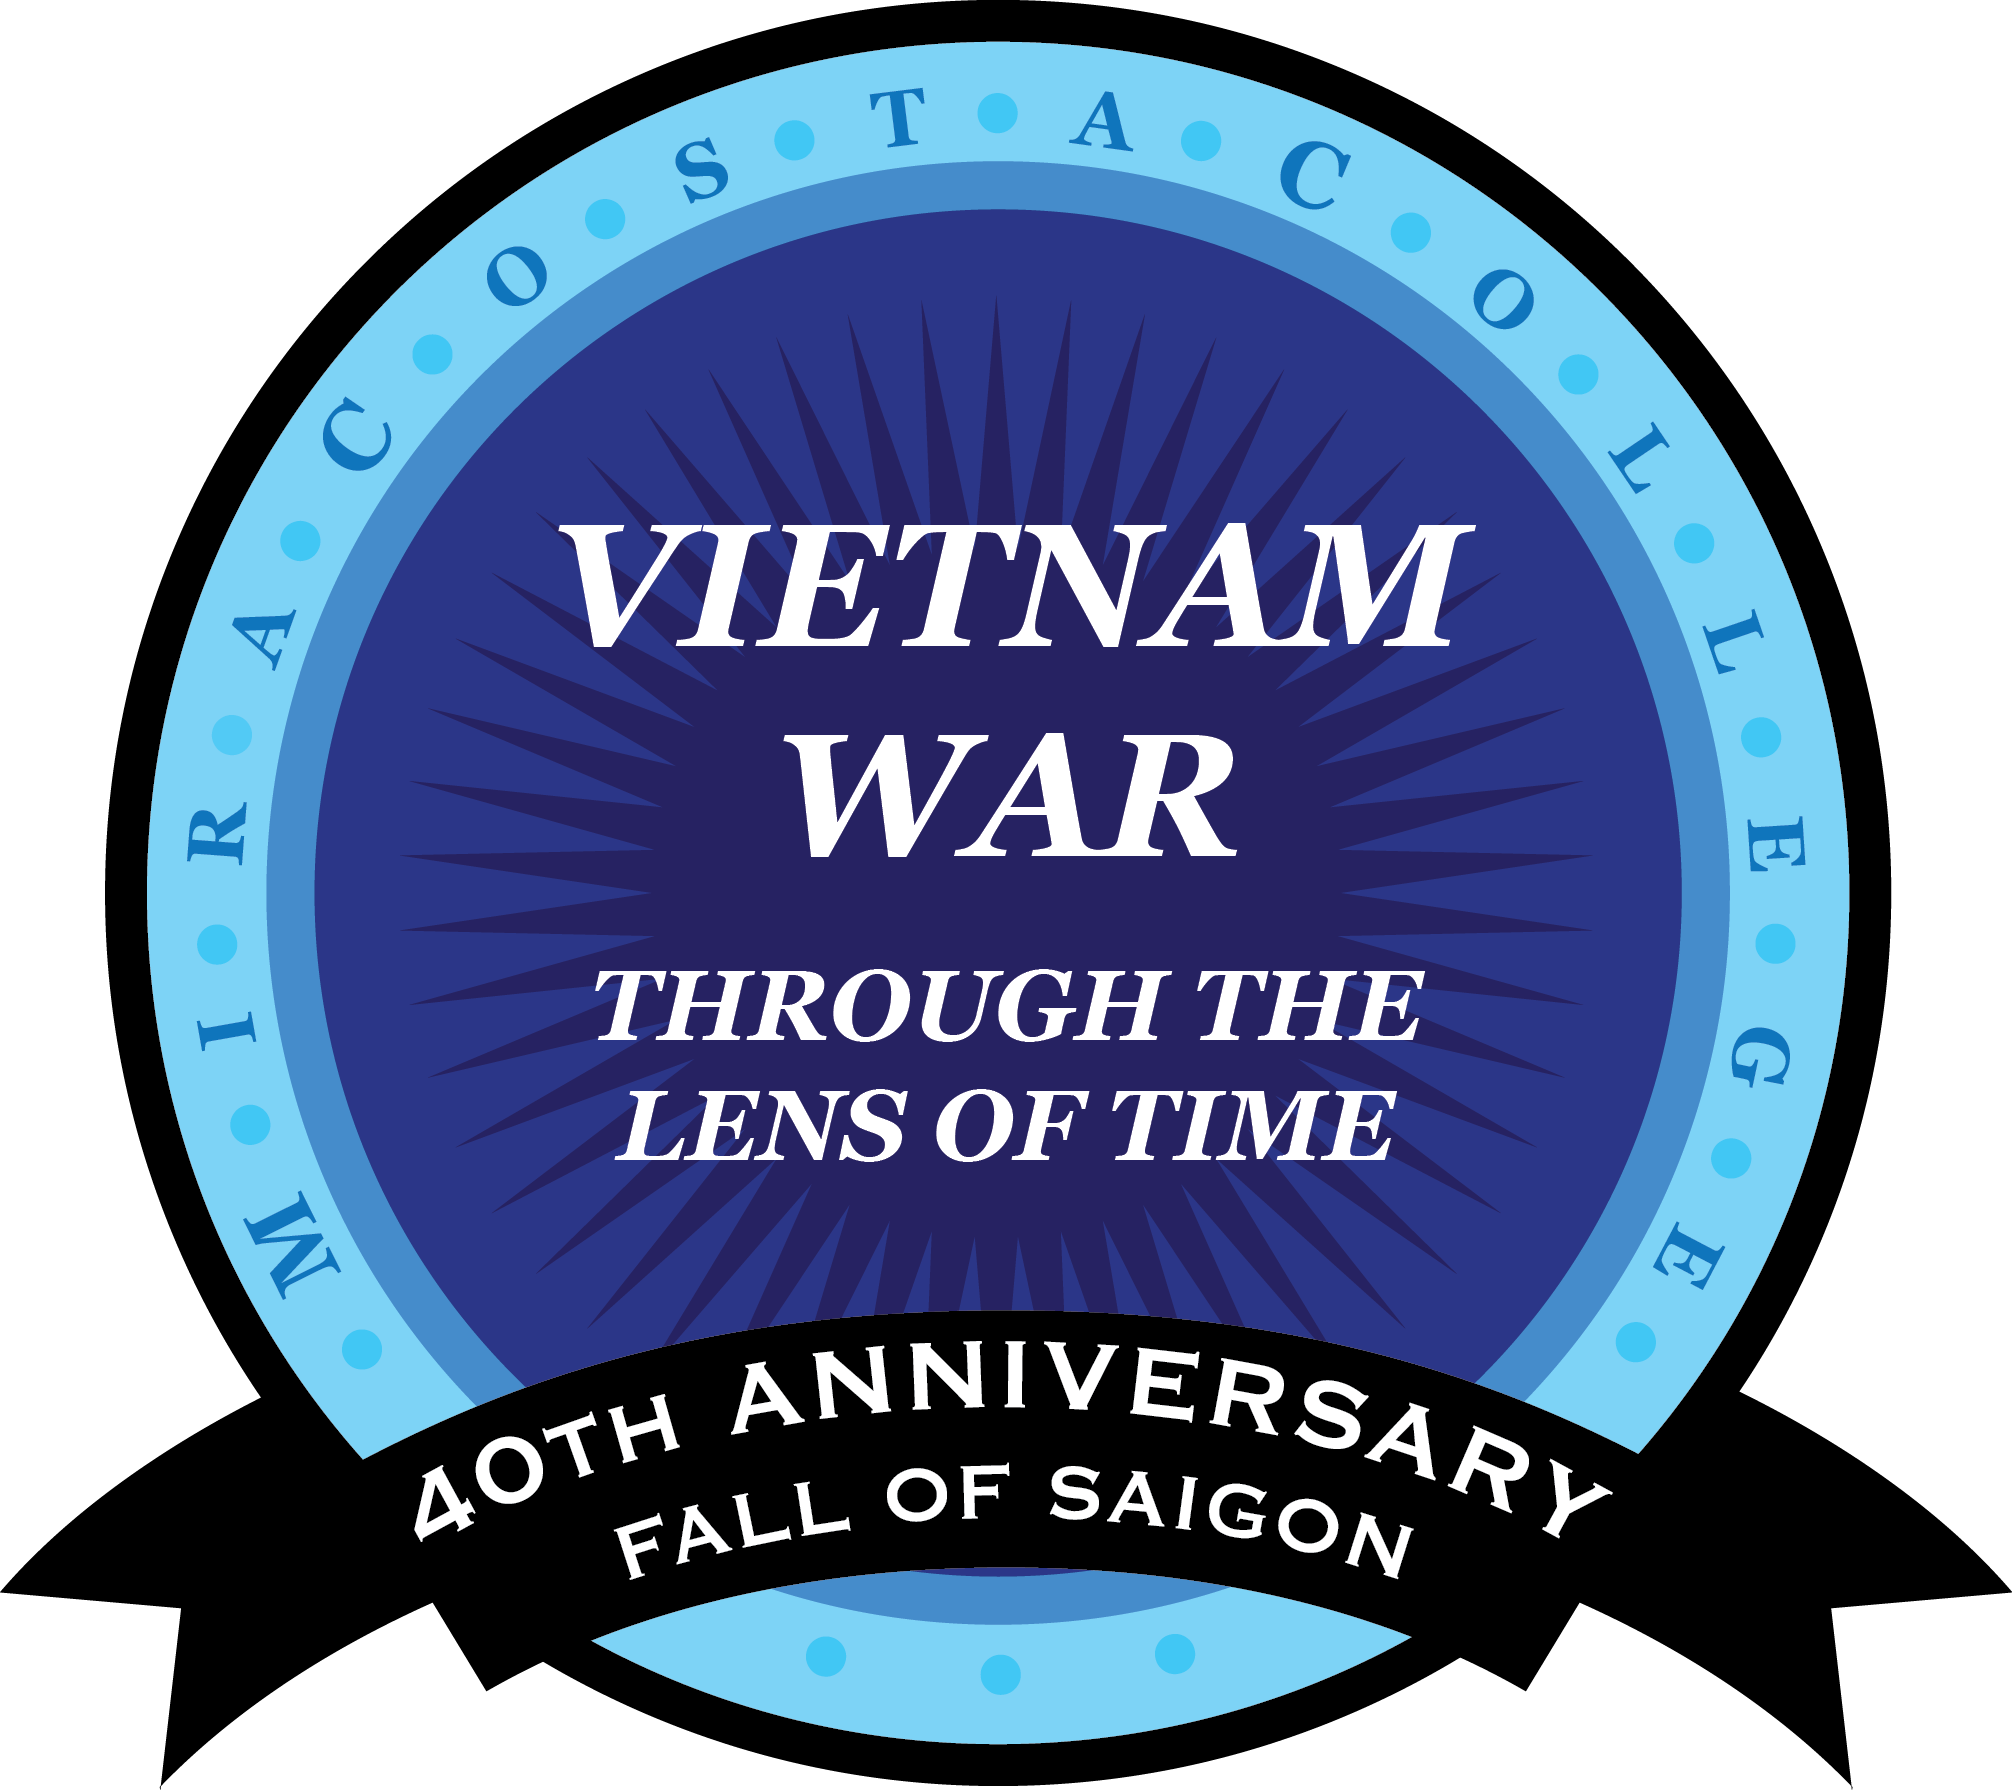 Vietnam War: Through the Lens of Time. 40th anniversary of the Fall of Saigon.